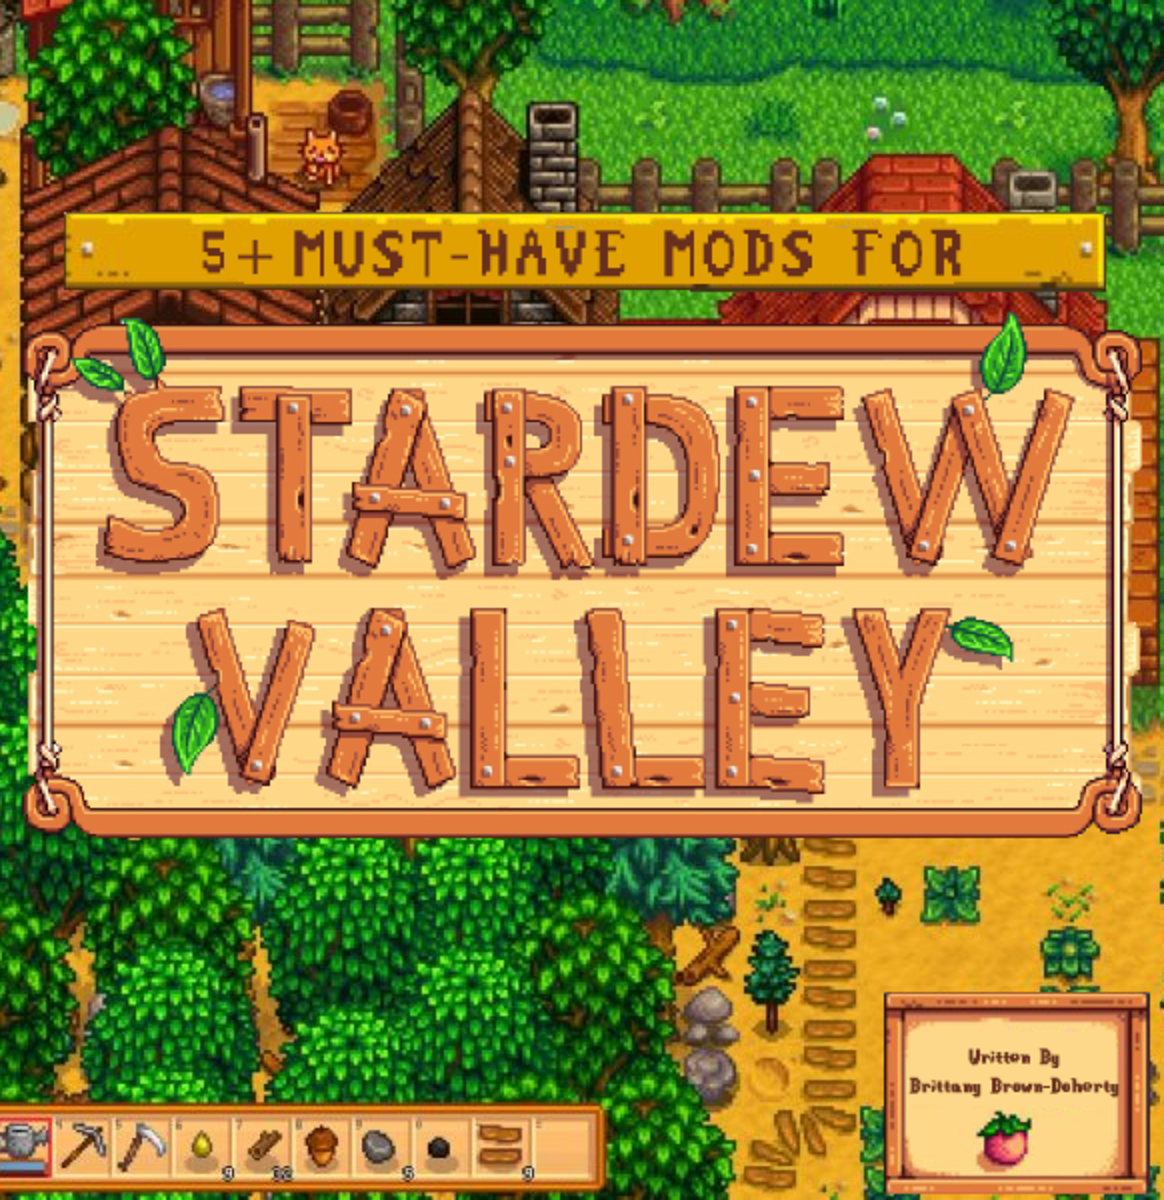 5+ Must-Have Mods for Stardew Valley! | LevelSkip